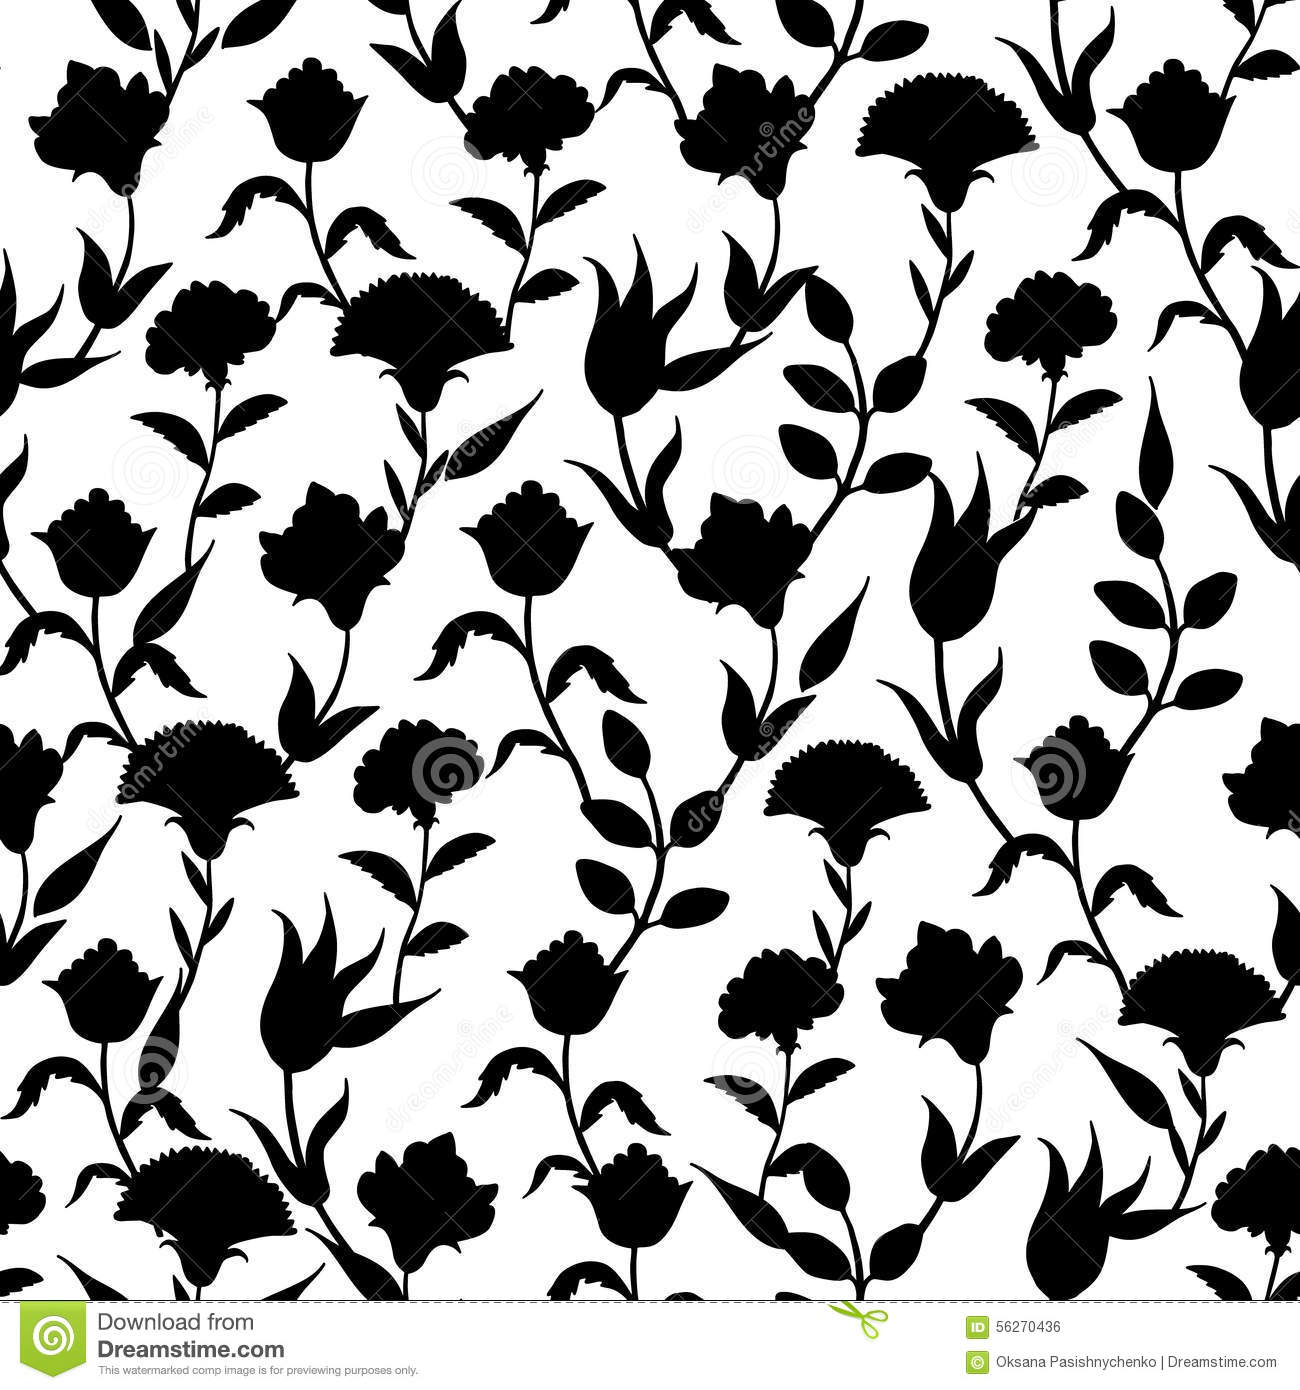 Black Flower Silhouette Pattern Royalty Free Stock Images: Vector Silhouette Black White Turkish Flowers Stock Vector